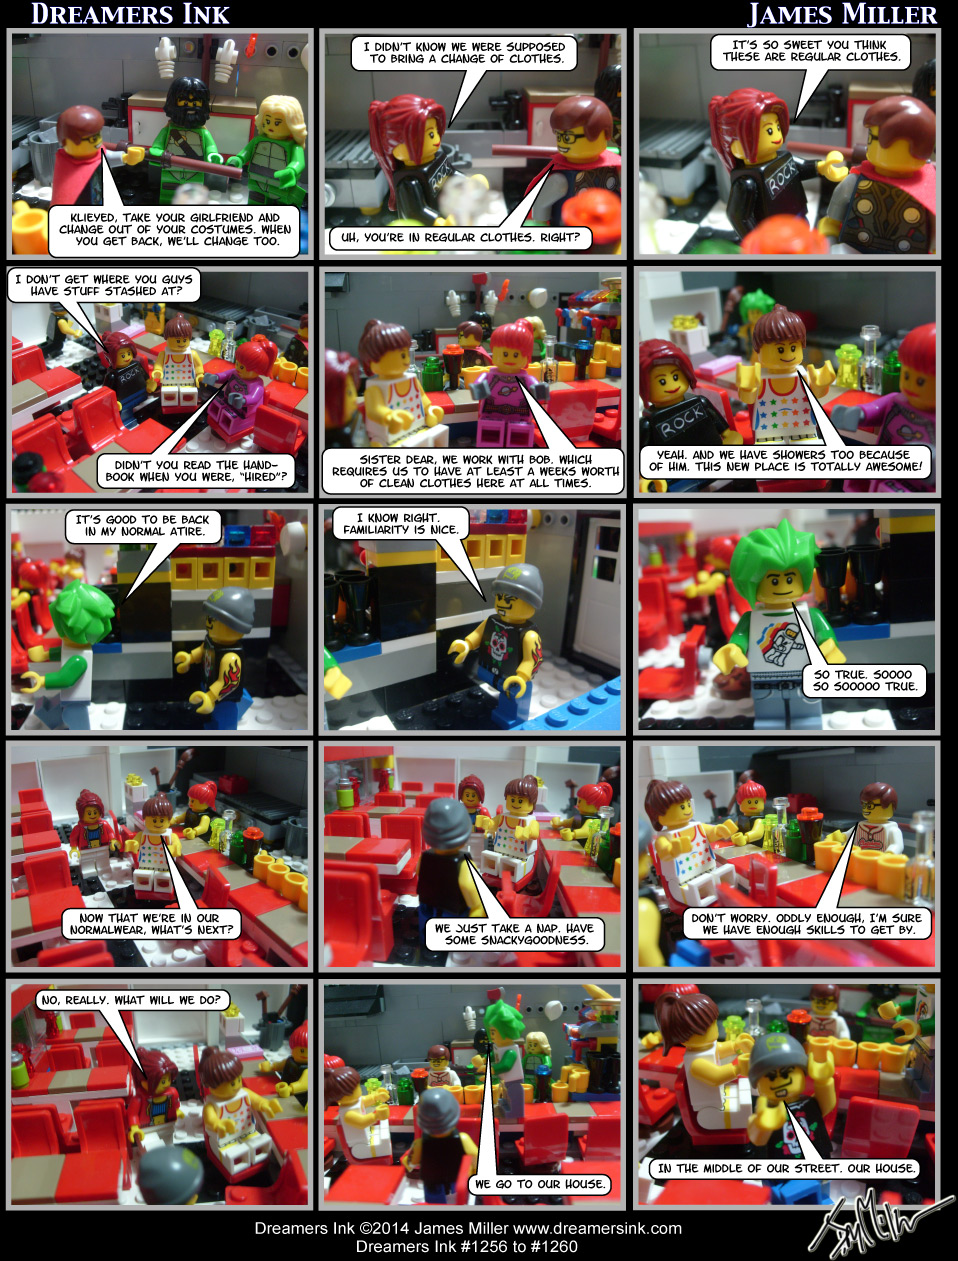 Strips #1256 To #1260